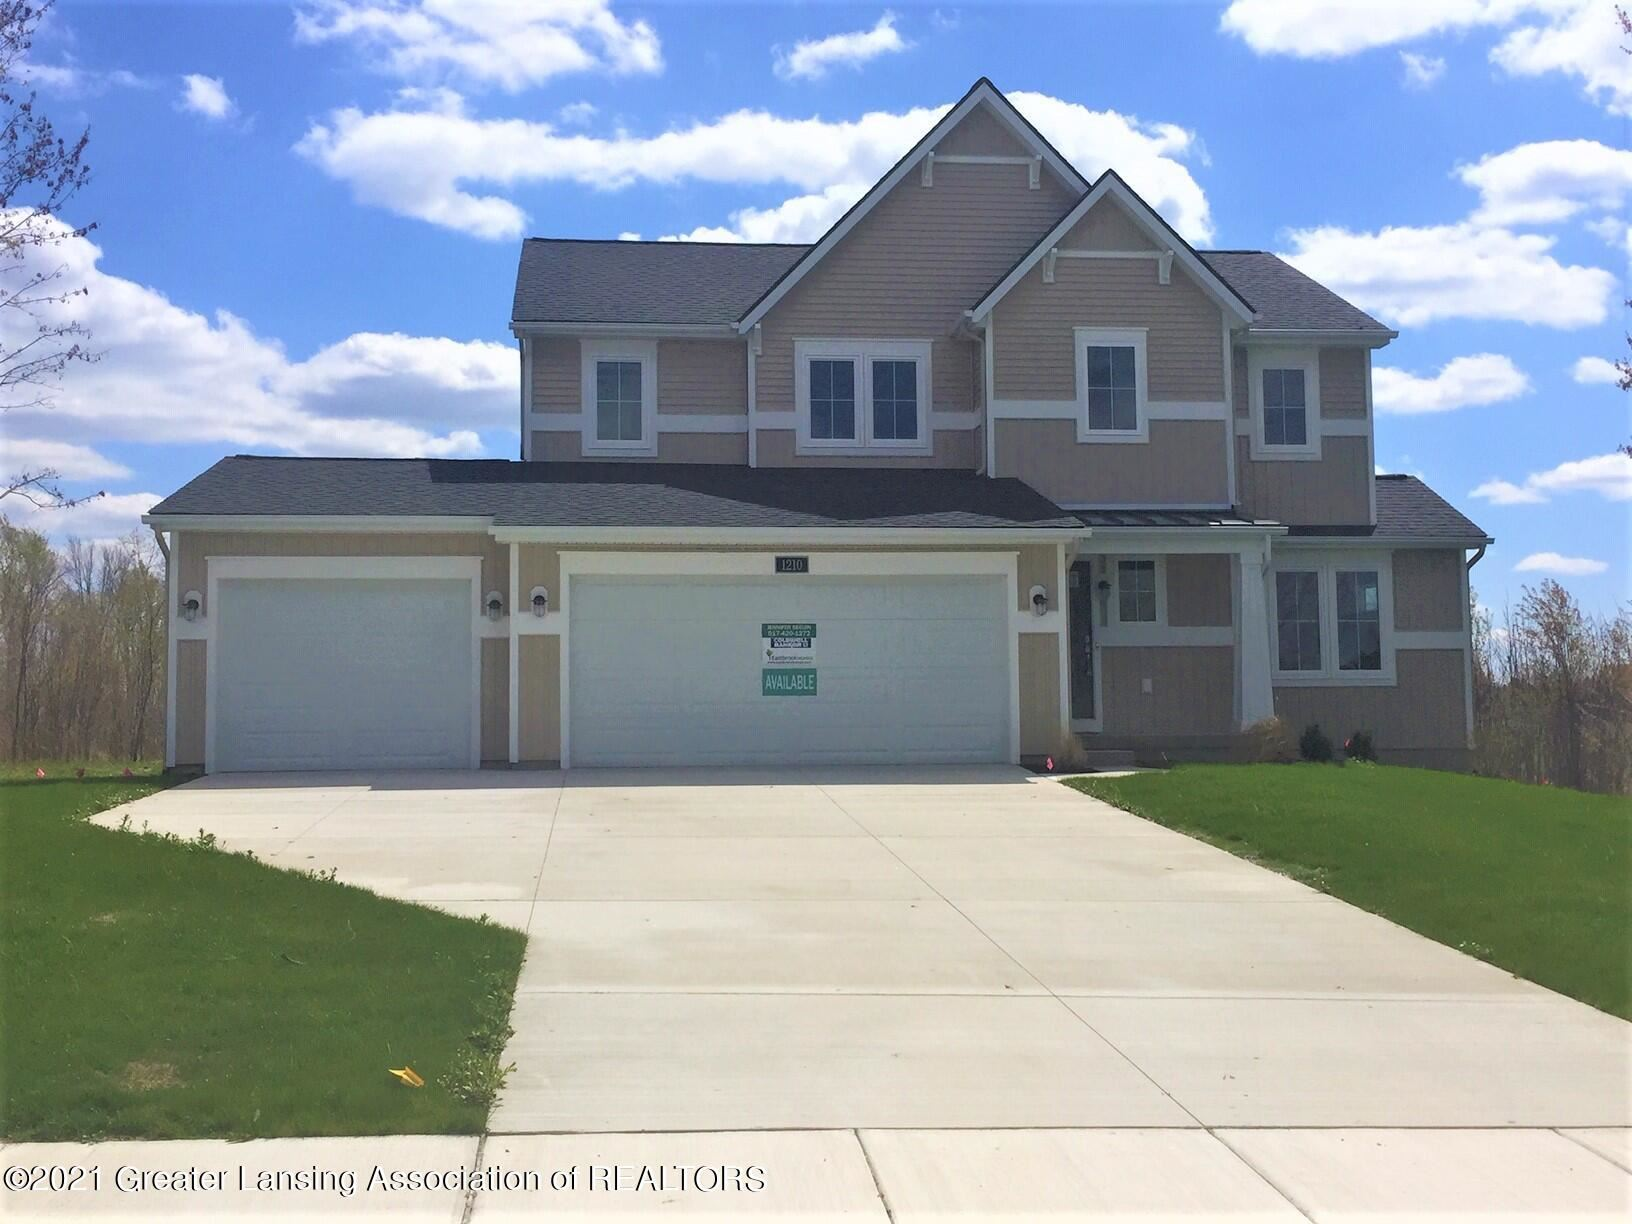 Photo of 1210 Summerfield Lane, St. Johns, MI 48879 (MLS # 243793)